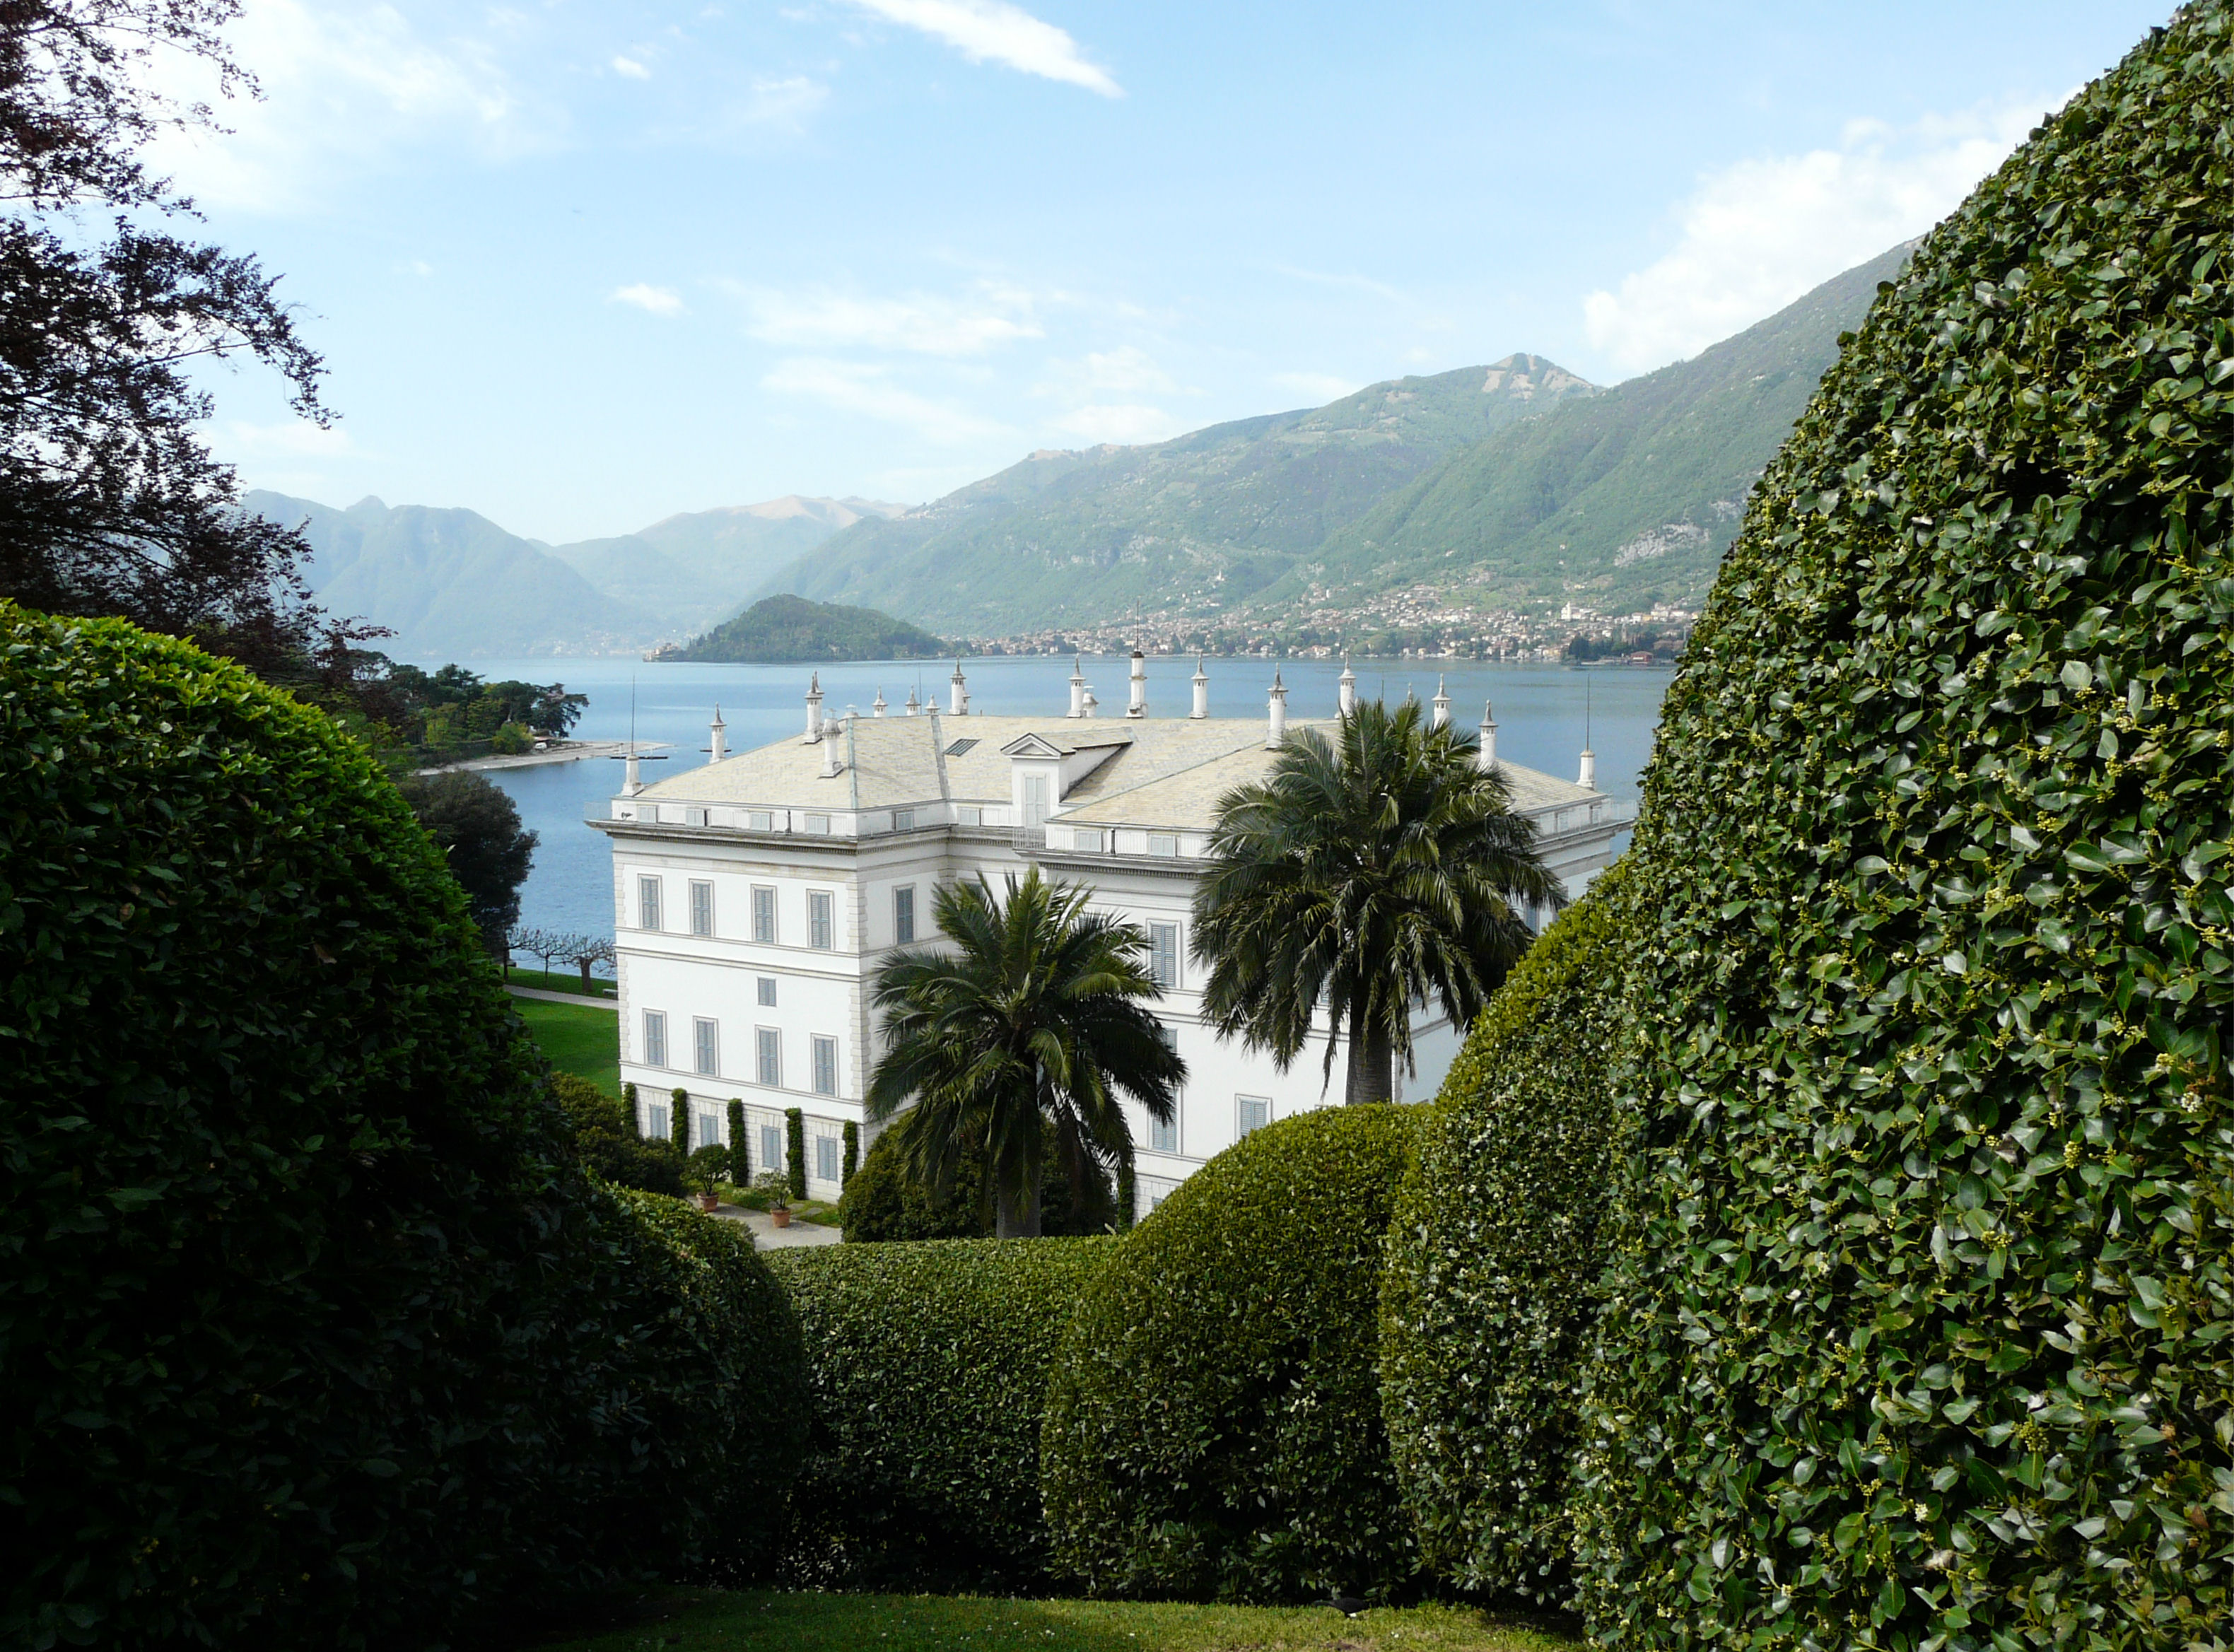 © Dipartimento di Scienze della Vita, Università degli Studi di Trieste<br>by Andrea Moro<br>Comune di Bellagio, Giardino Botanico di Villa Melzi, CO, Lombardia, Italia, 12/04/2011<br>Distributed under CC-BY-SA 4.0 license.